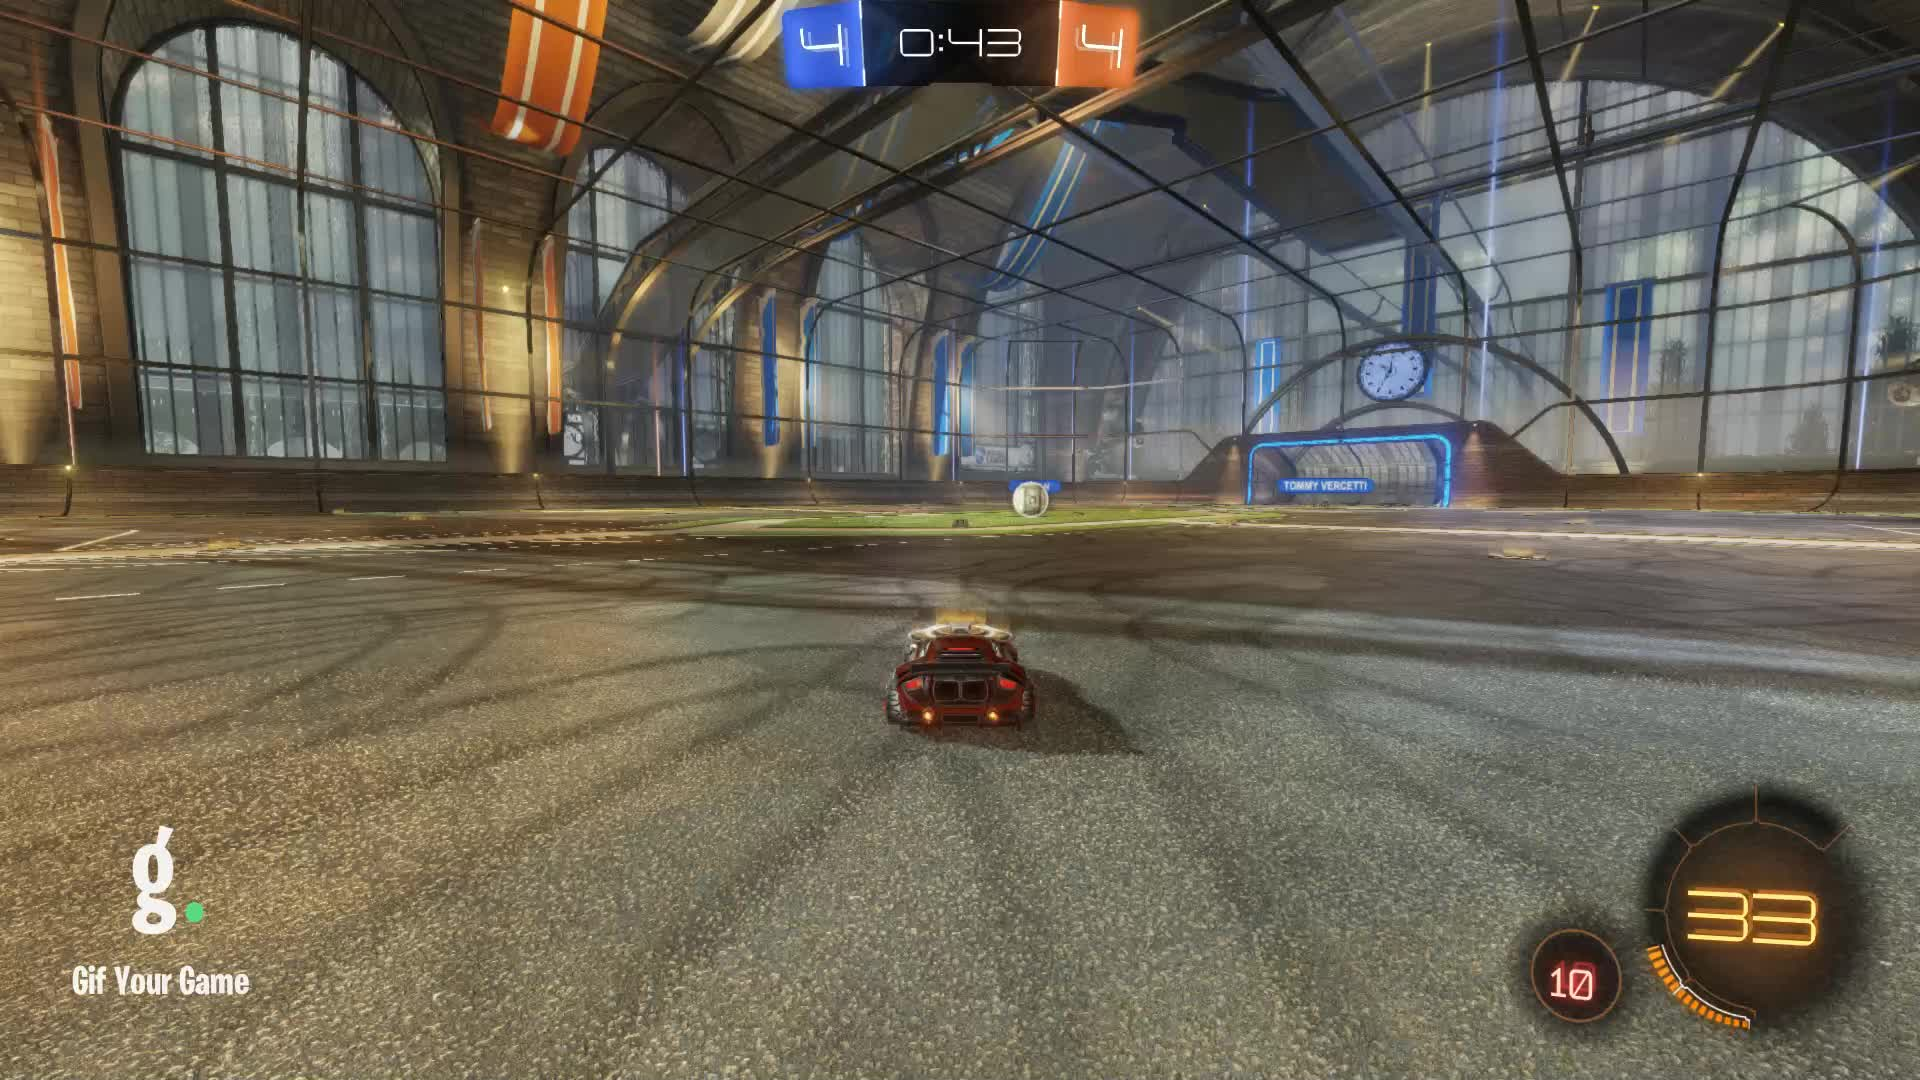 Assist, Duck Dodgers, Gif Your Game, GifYourGame, Rocket League, RocketLeague, Assist 5: Duck Dodgers GIFs